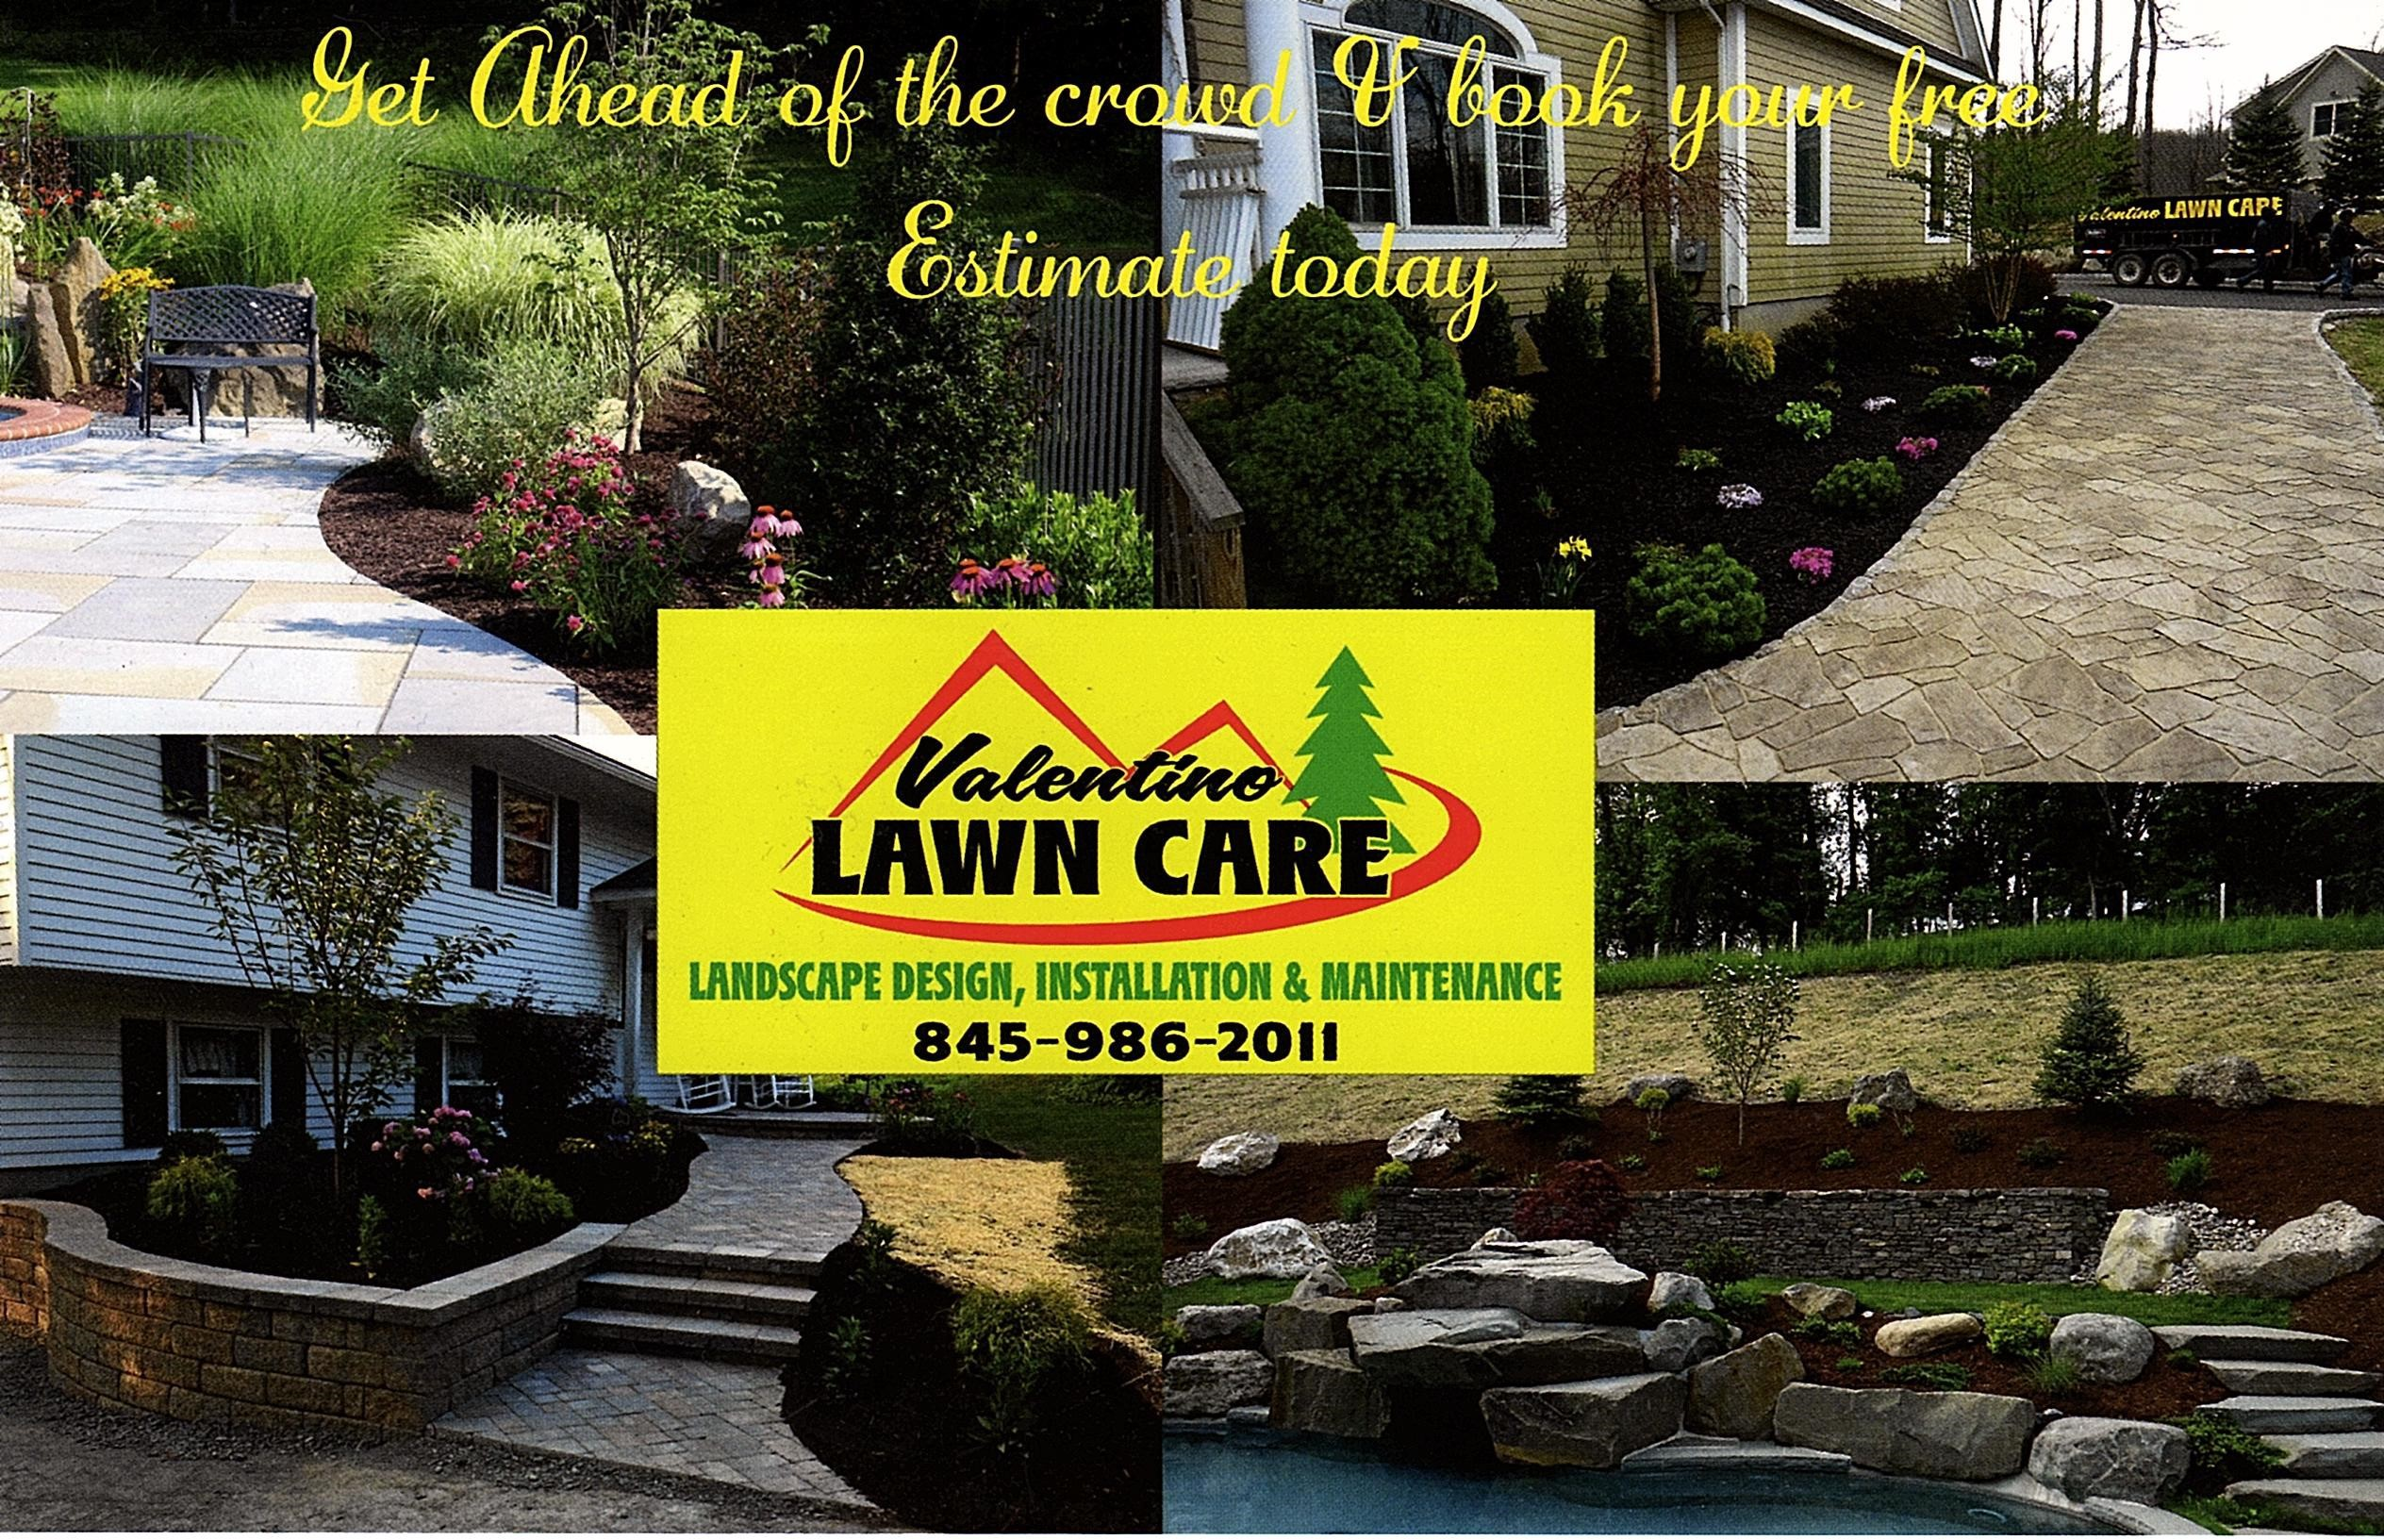 Example of landscaping design by our lawn services company in Warwick, NY